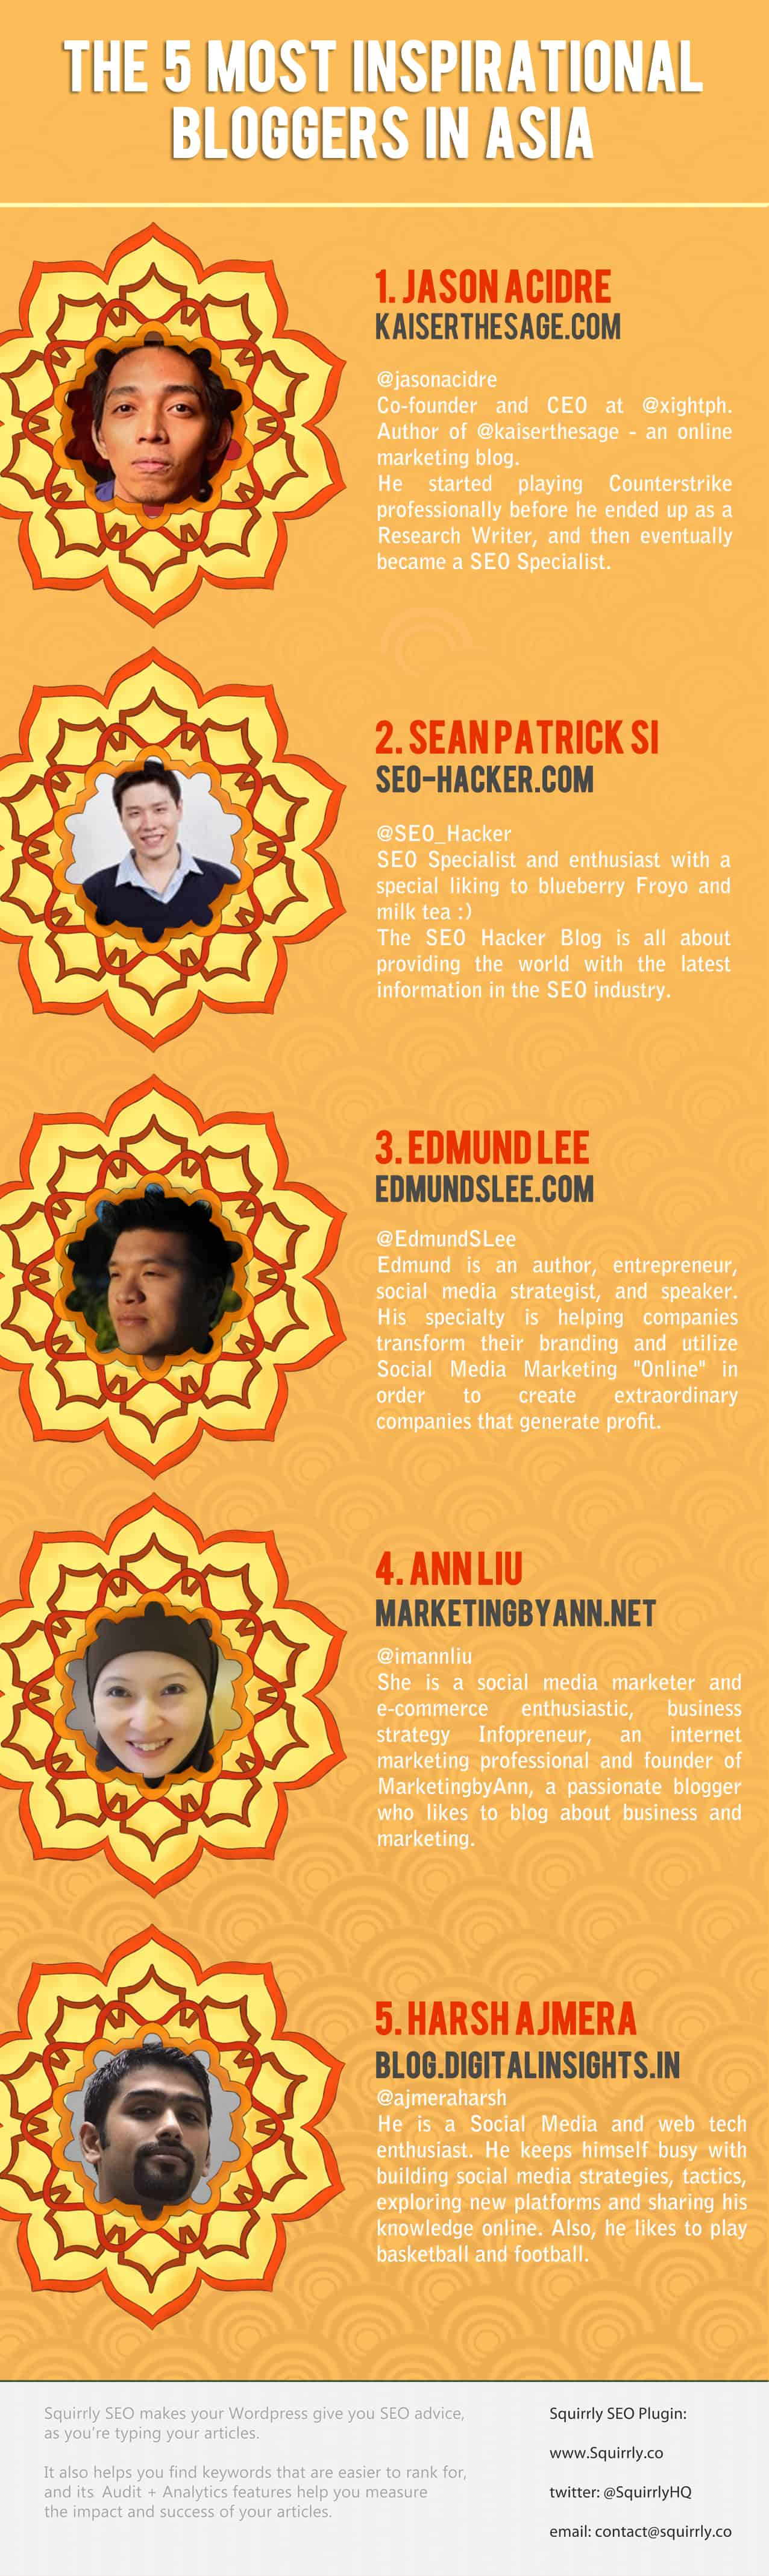 5 most inspirational bloggers in asia